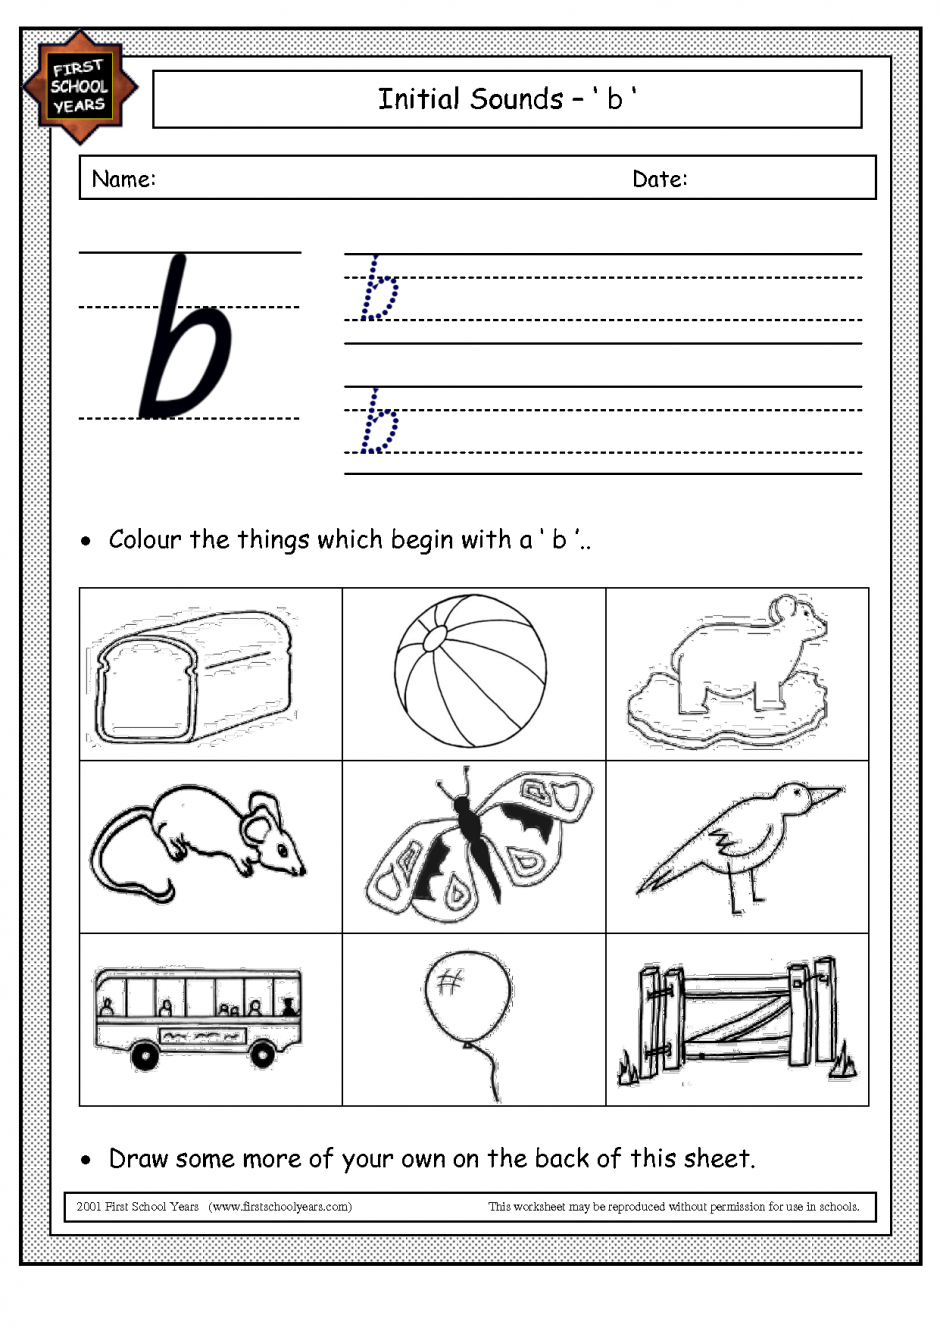 Glancely Free Worksheets For Kids Printables - Jolly Phonics Worksheets Free Printable